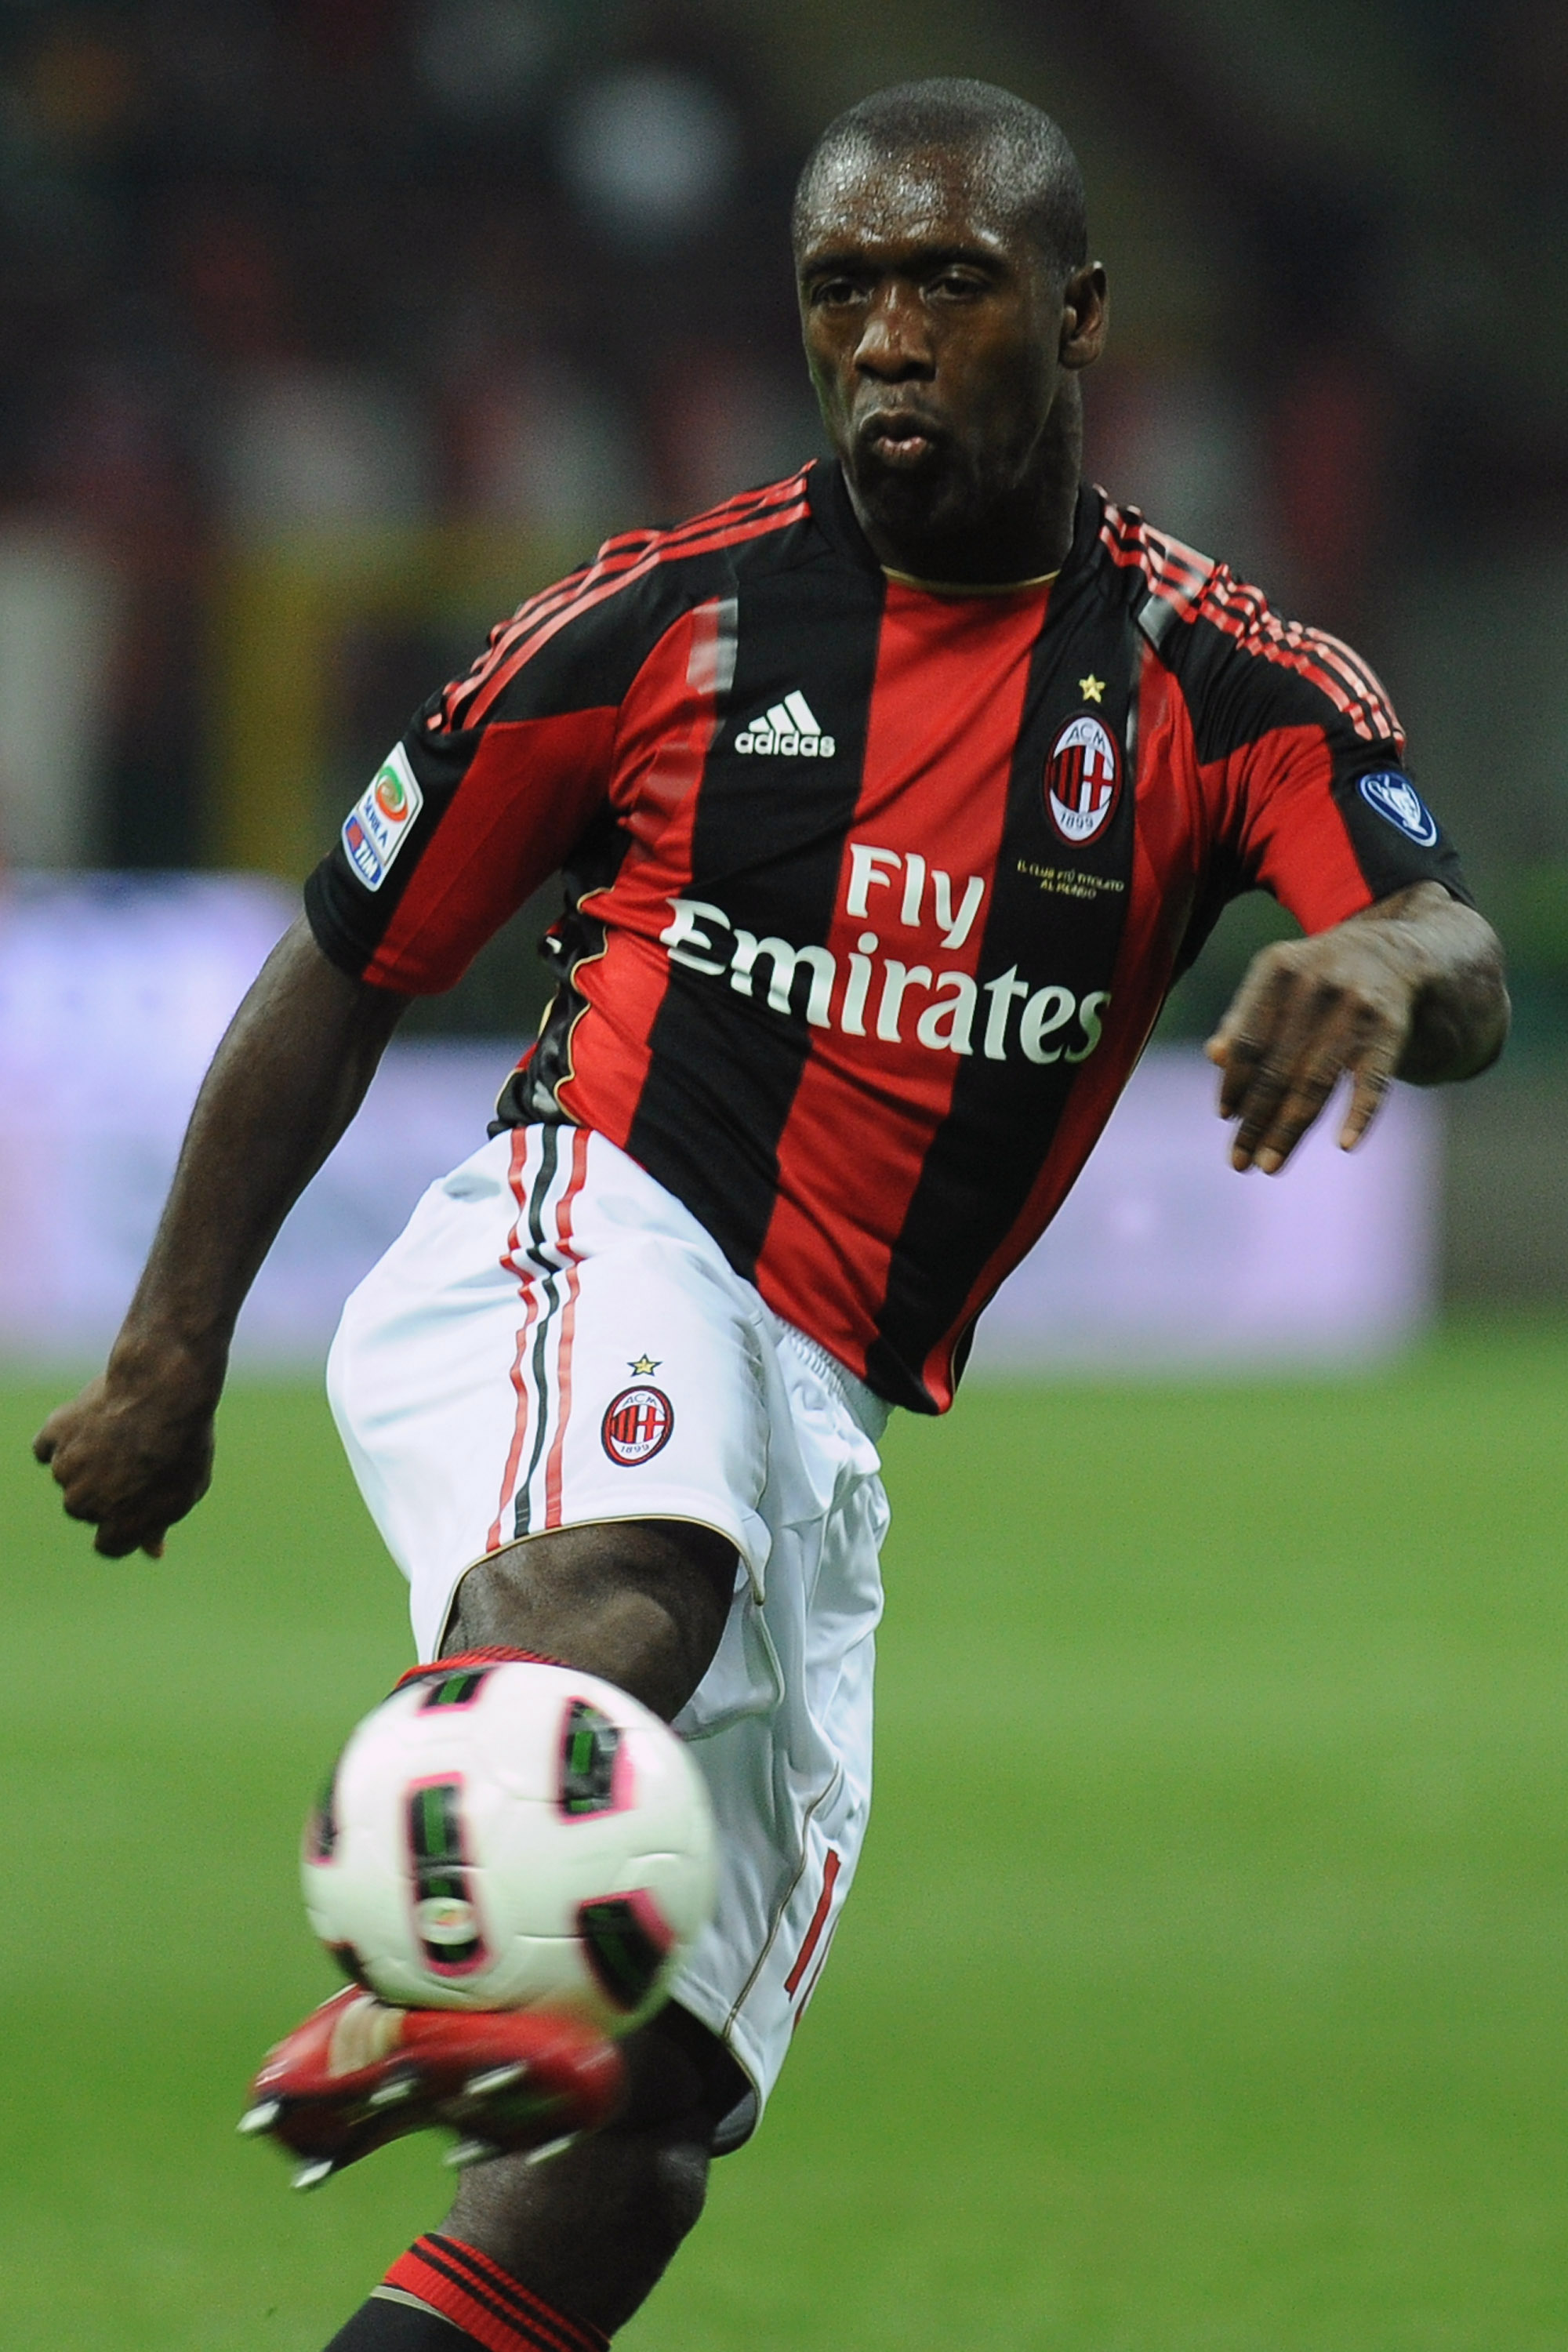 MILAN, ITALY - APRIL 16:  Clarence Seedorf of AC Milan in action during the Serie A match between AC Milan and UC Sampdoria at Stadio Giuseppe Meazza on April 16, 2011 in Milan, Italy.  (Photo by Valerio Pennicino/Getty Images)